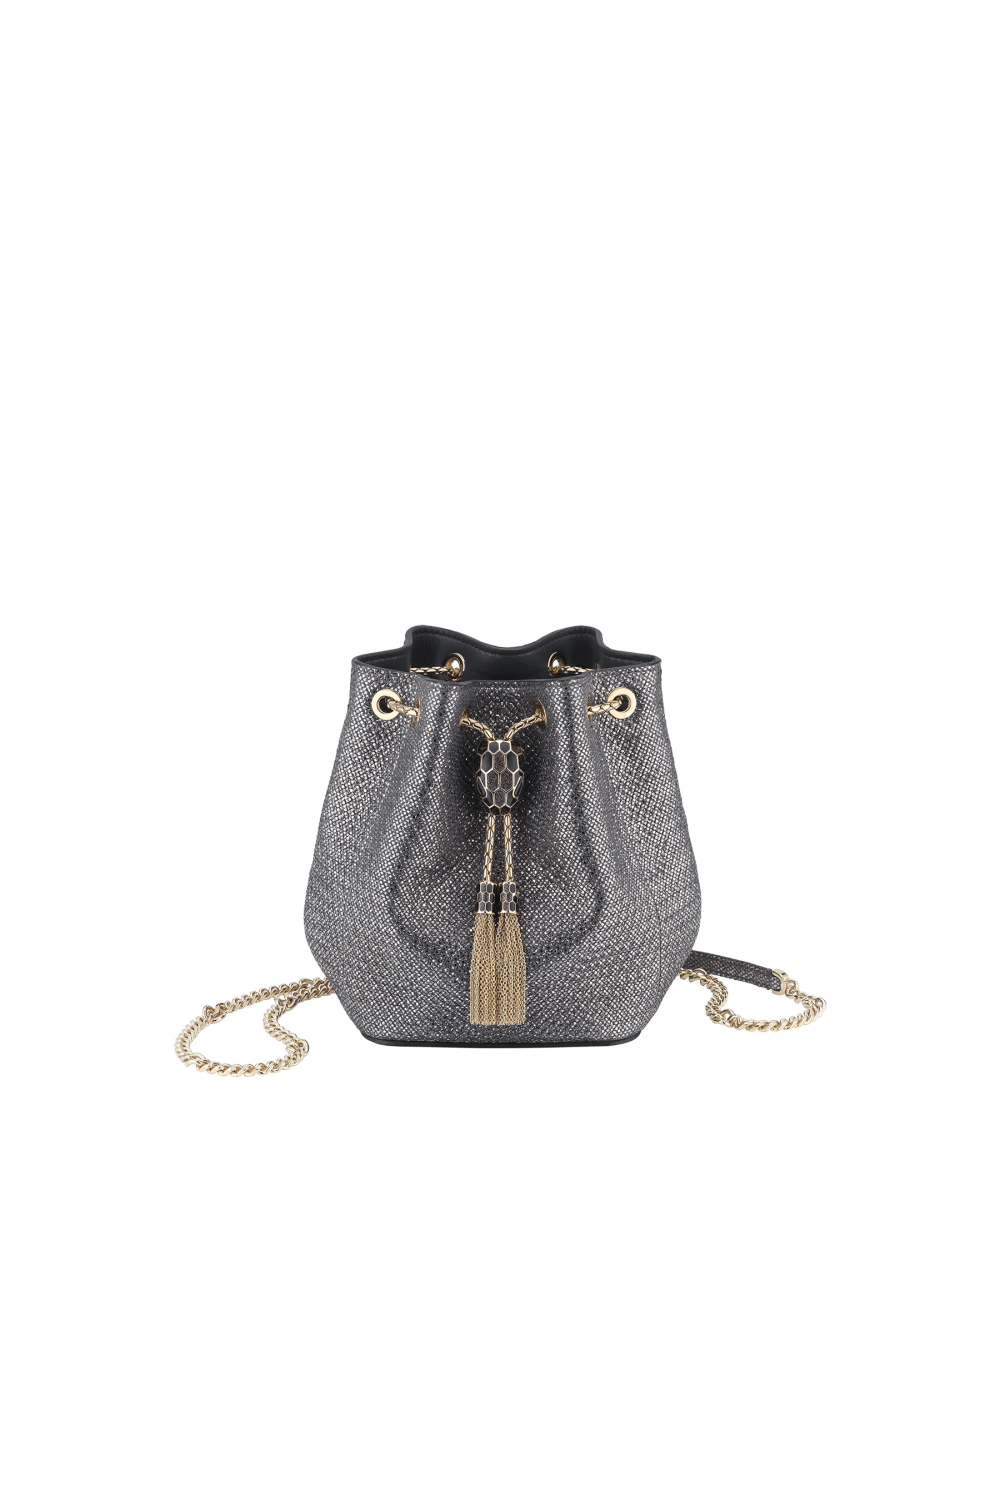 Bulgari Serpenti Forever Micro Bucket Bag in Charcoal Diamond Metallic